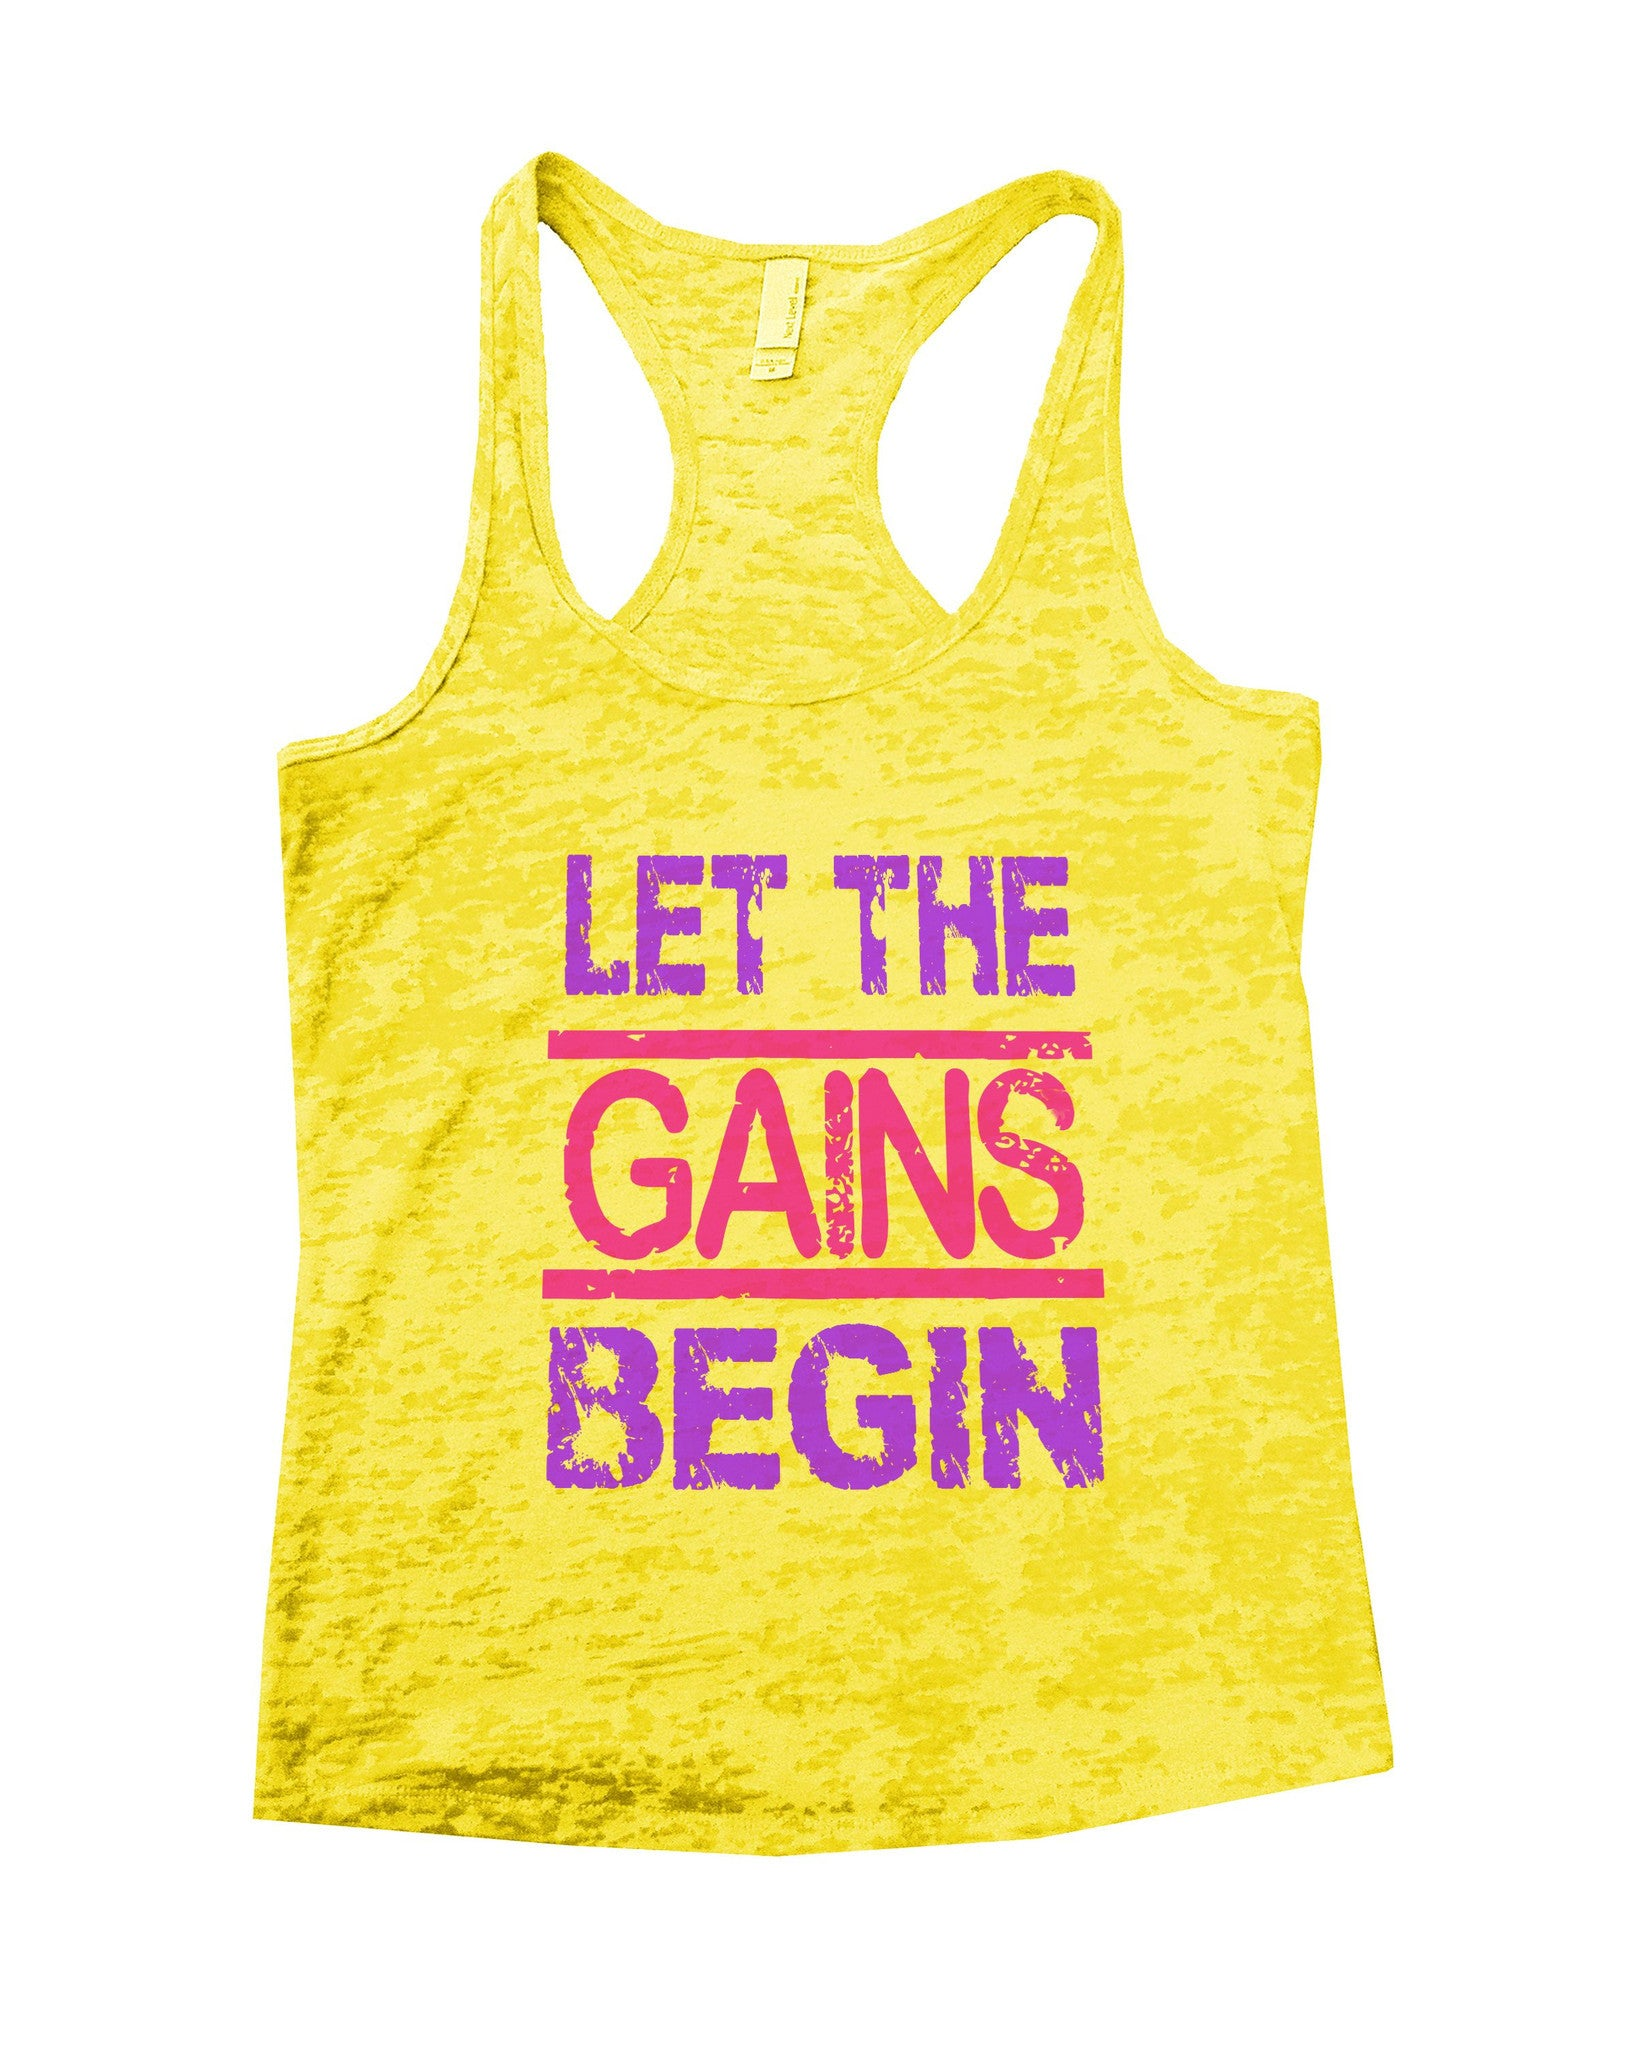 Let The Gains Begin Burnout Tank Top By BurnoutTankTops.com - 540 - Funny Shirts Tank Tops Burnouts and Triblends  - 6